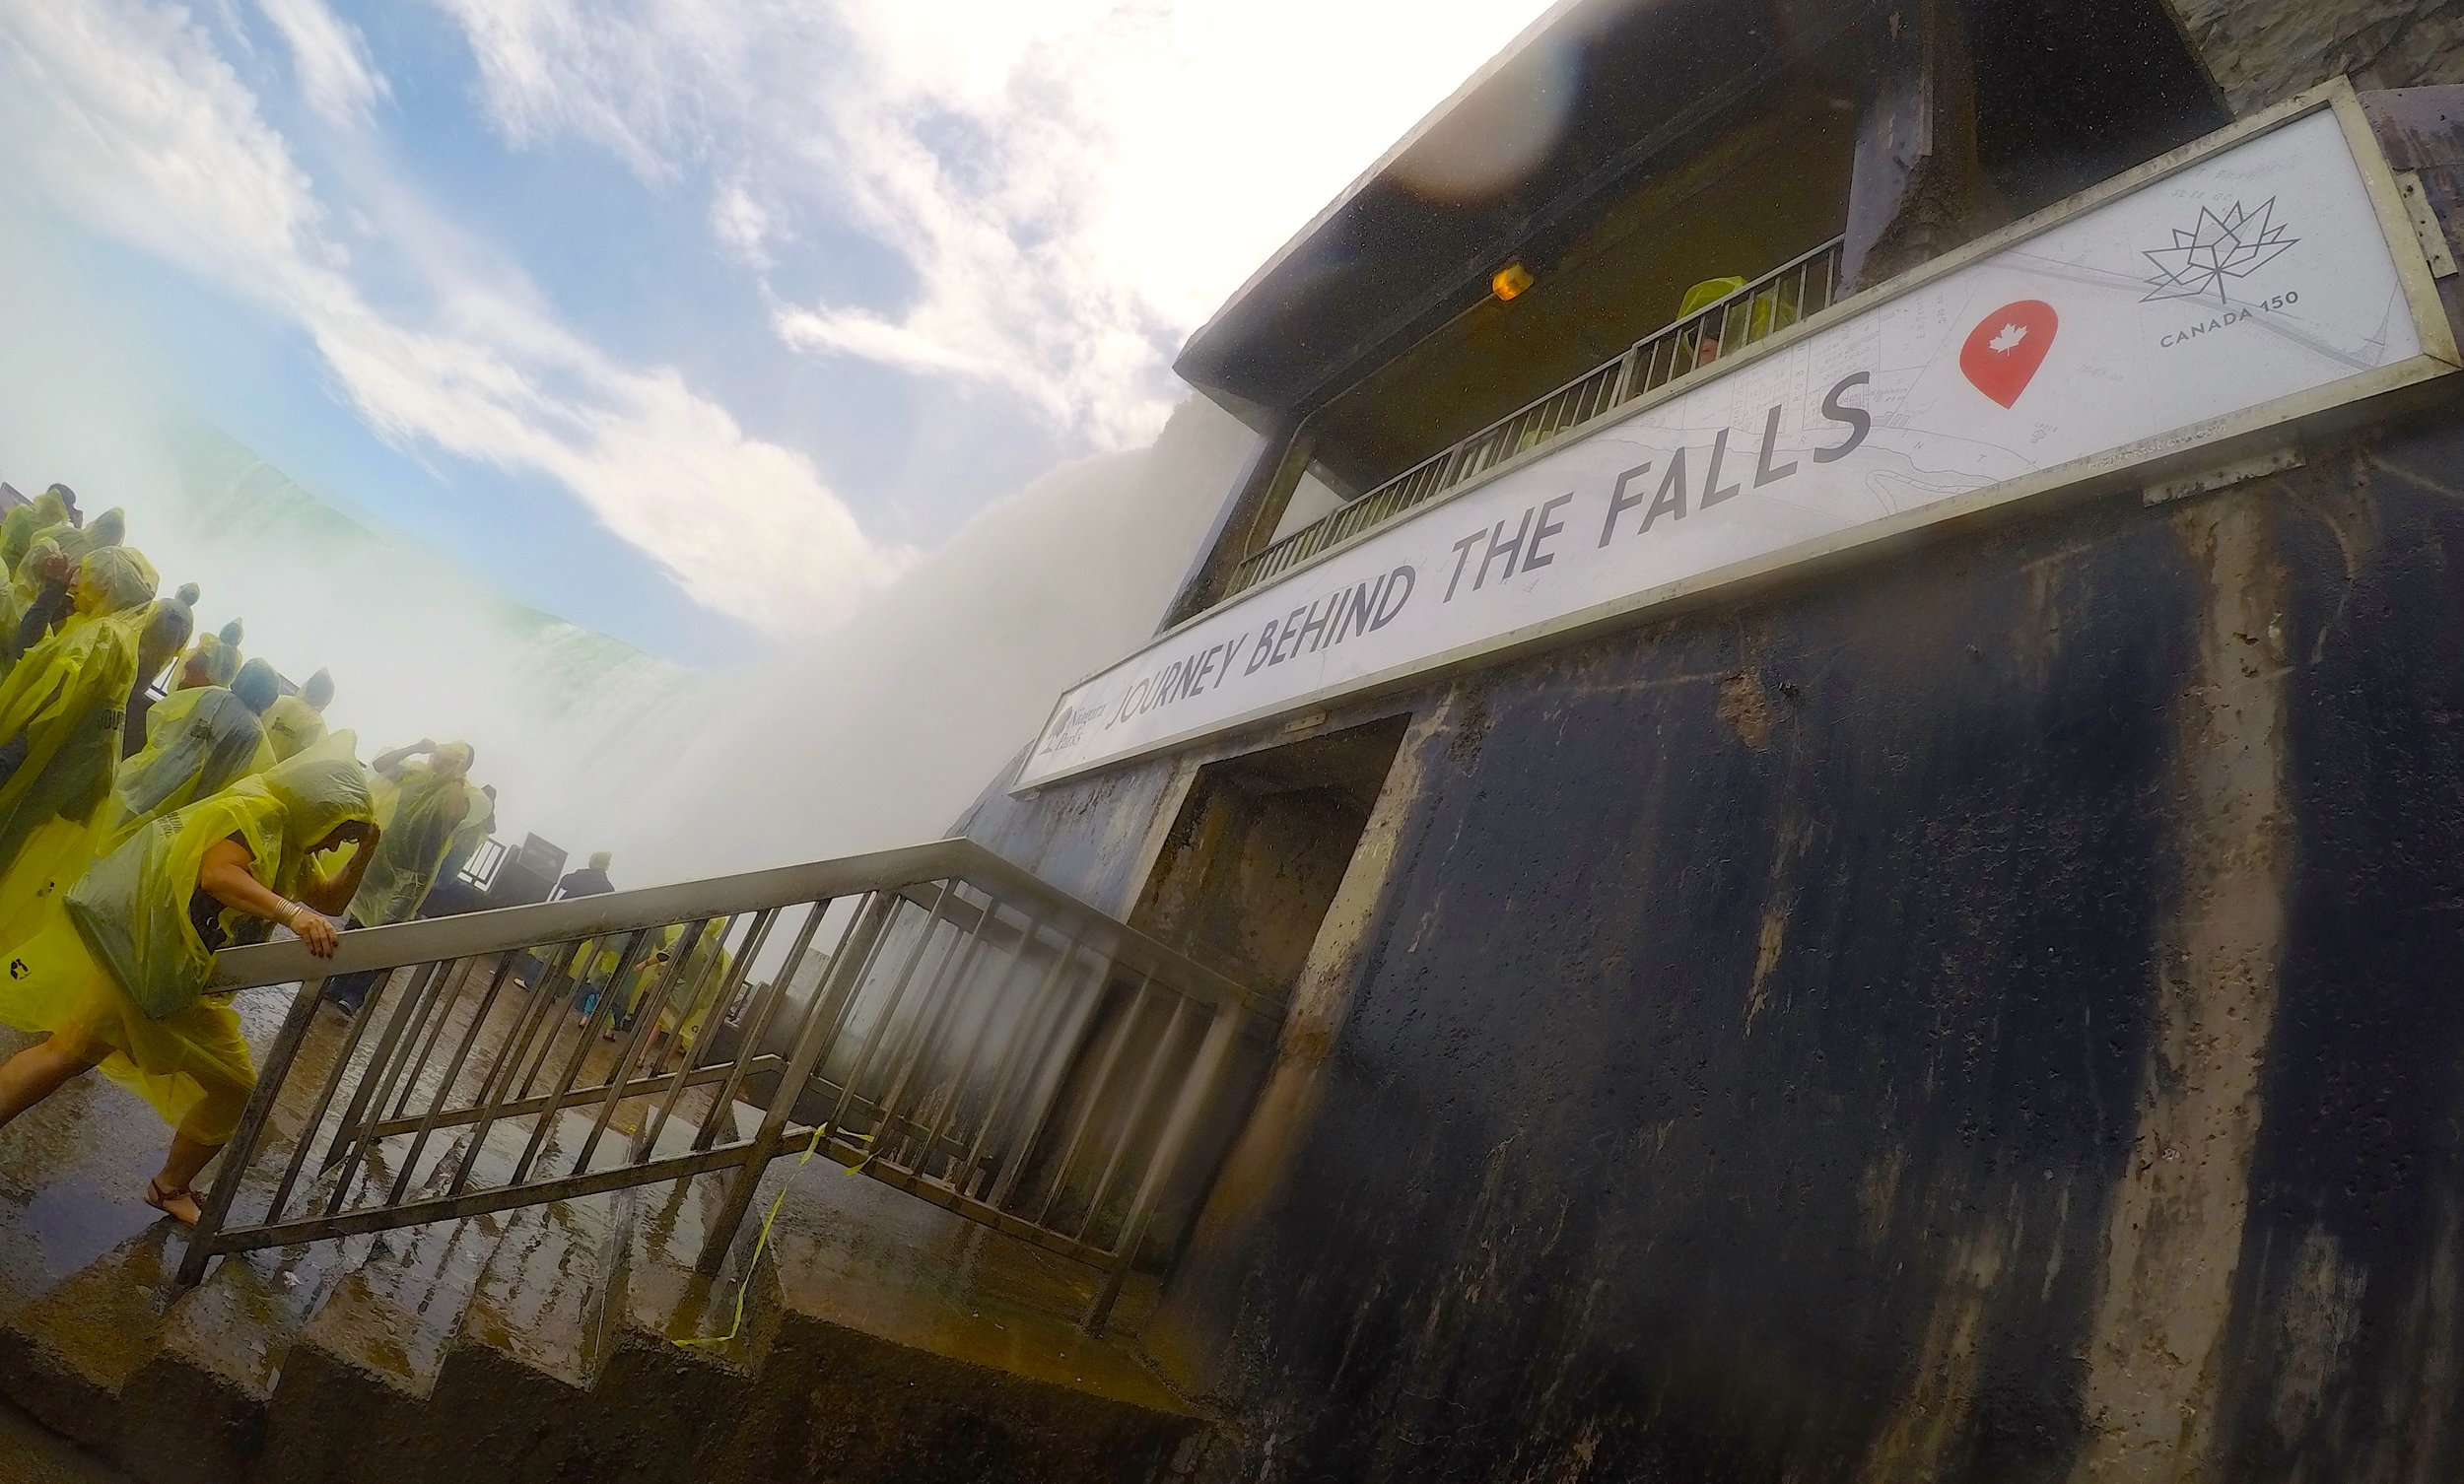 2/Journey Behind the Falls vs. Cave of the Winds